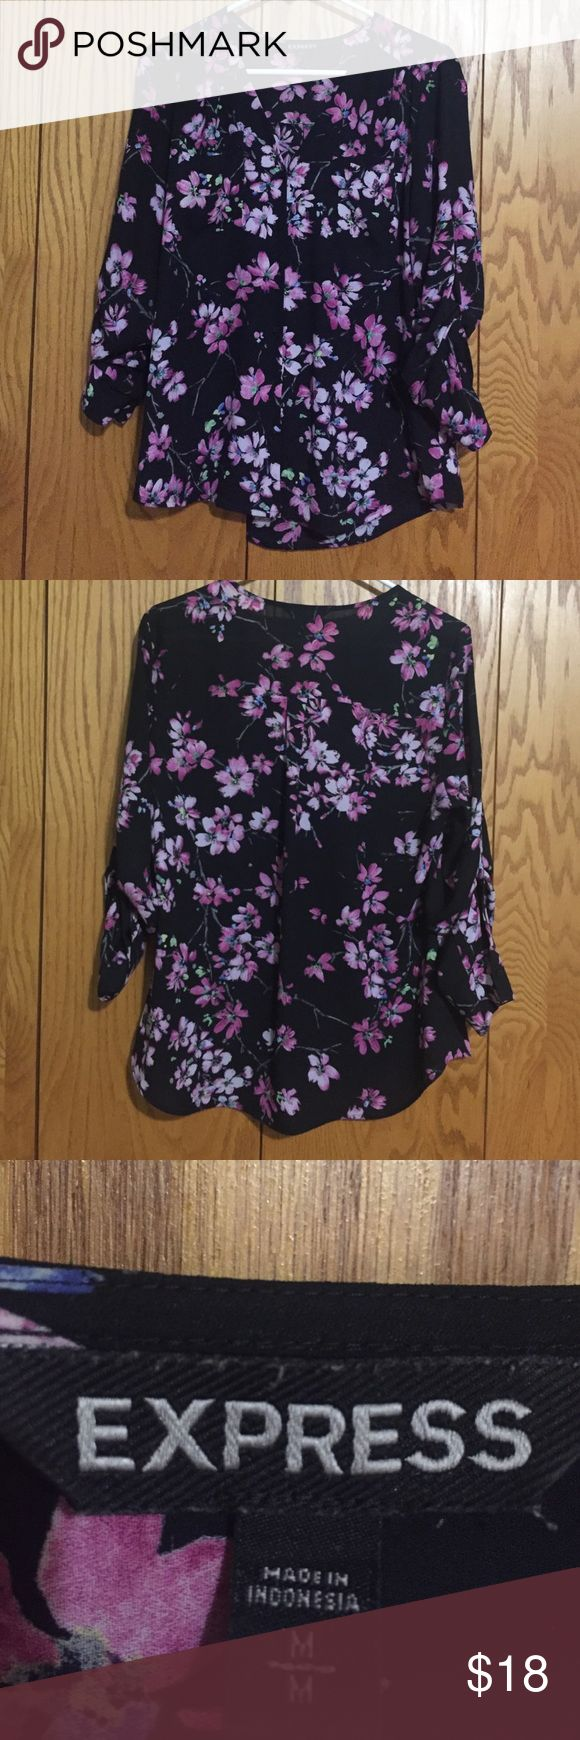 Express Flower Blouse Worn a handful of times. Good condition. Express Tops Blouses